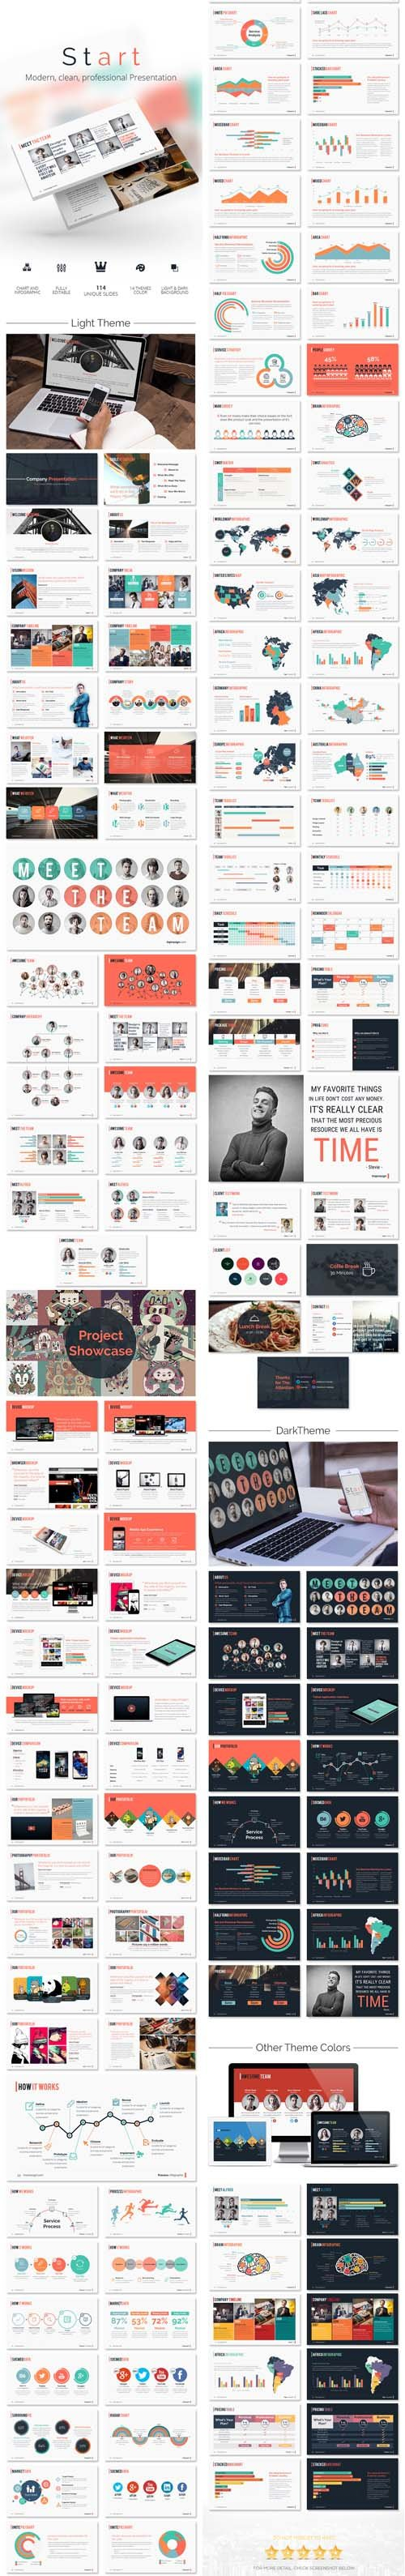 GraphicRiver - START Keynote - Modern Clean Presentation 14222084